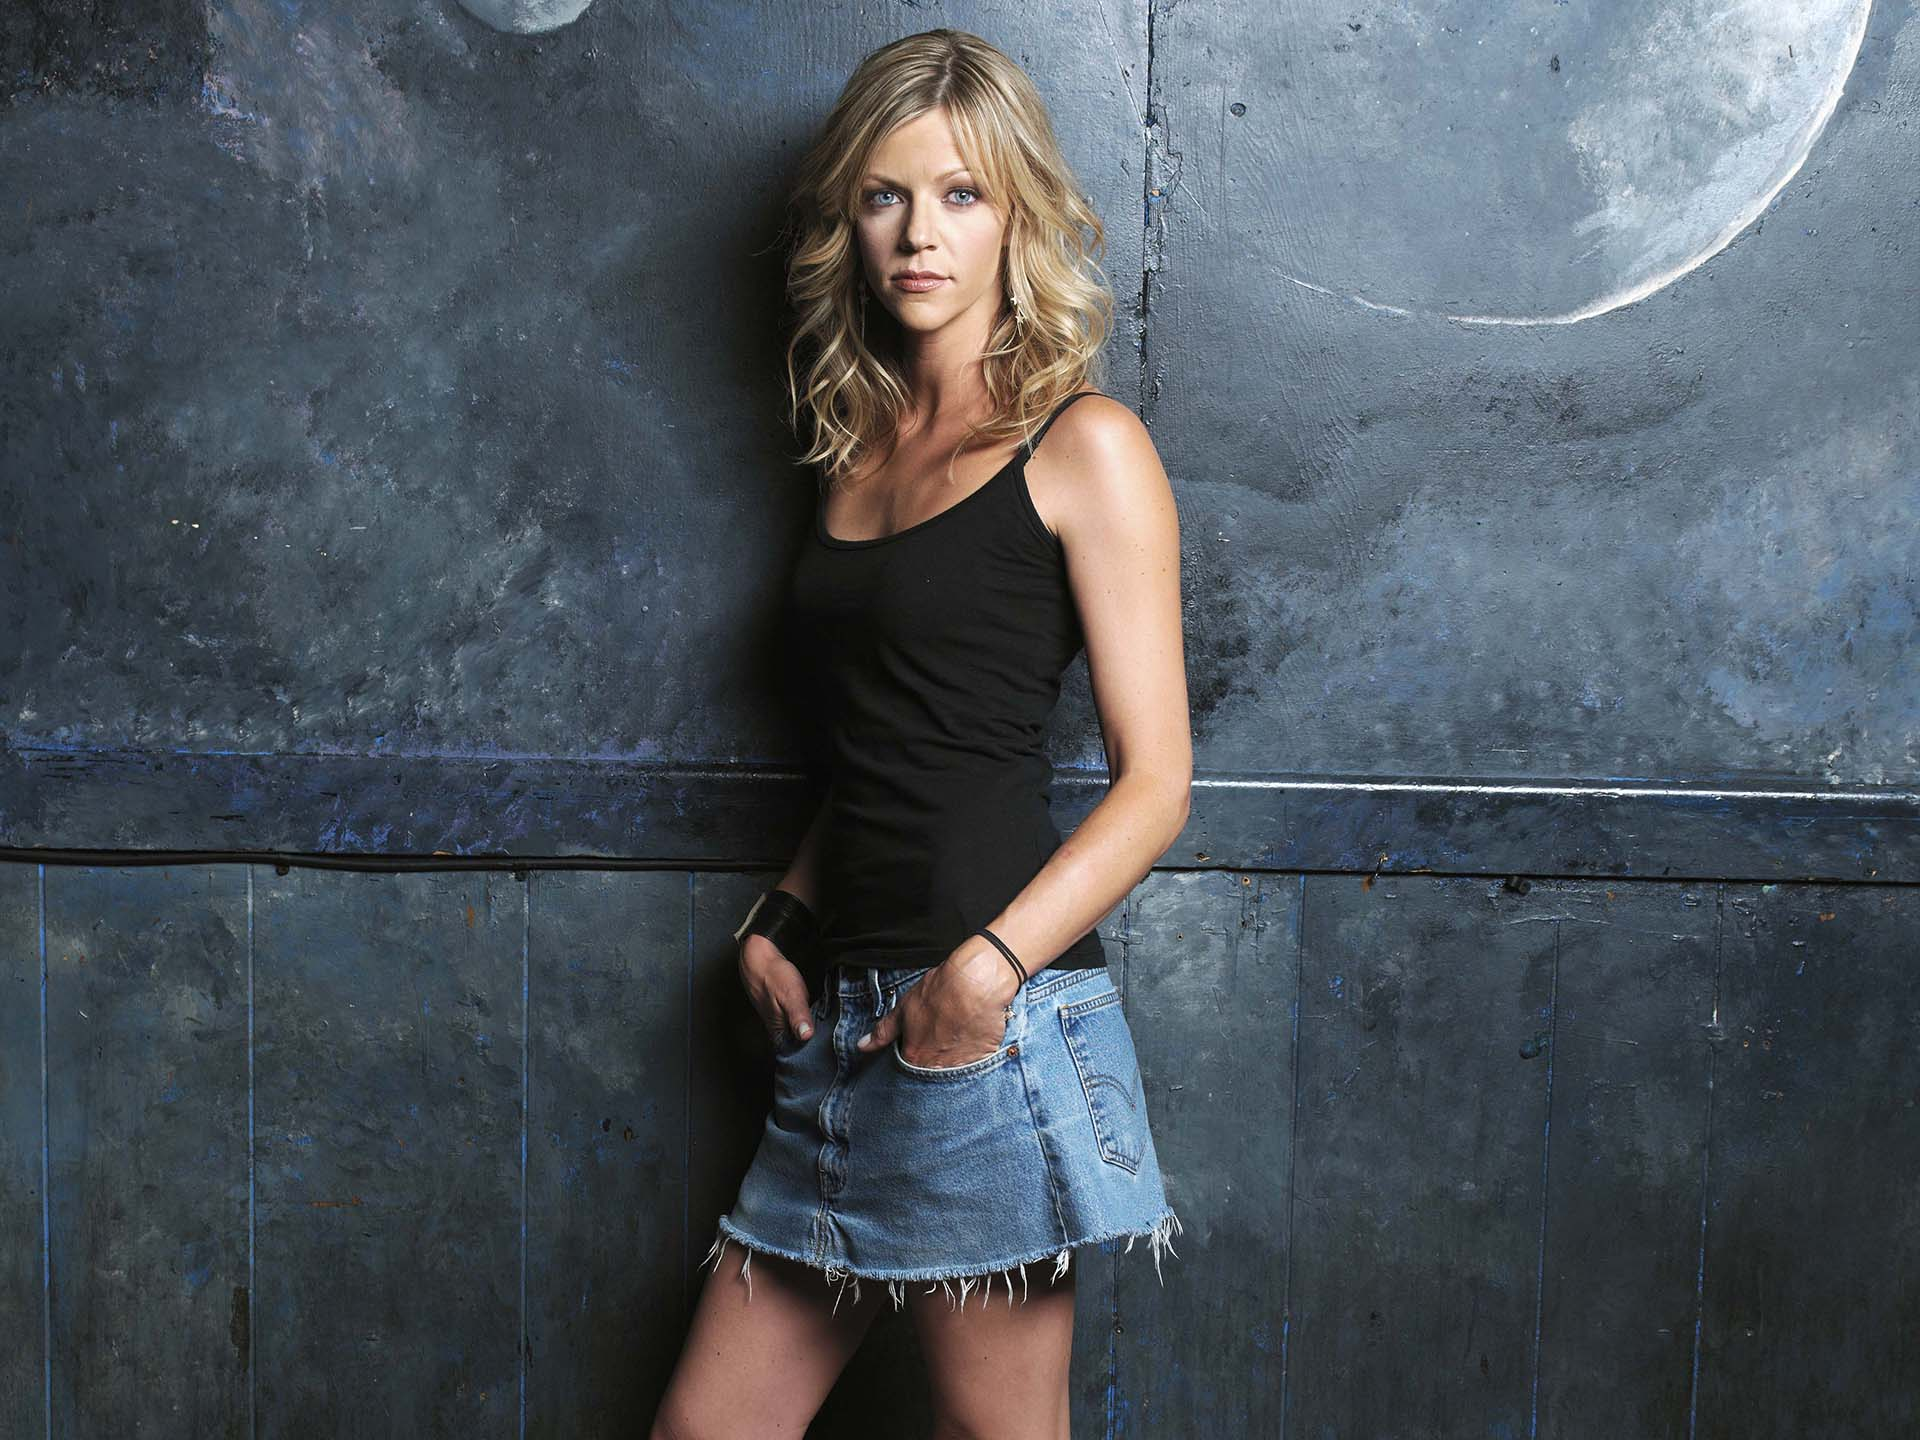 Kaitlin Olson Hot Pics, Latest Near-Nude Photos